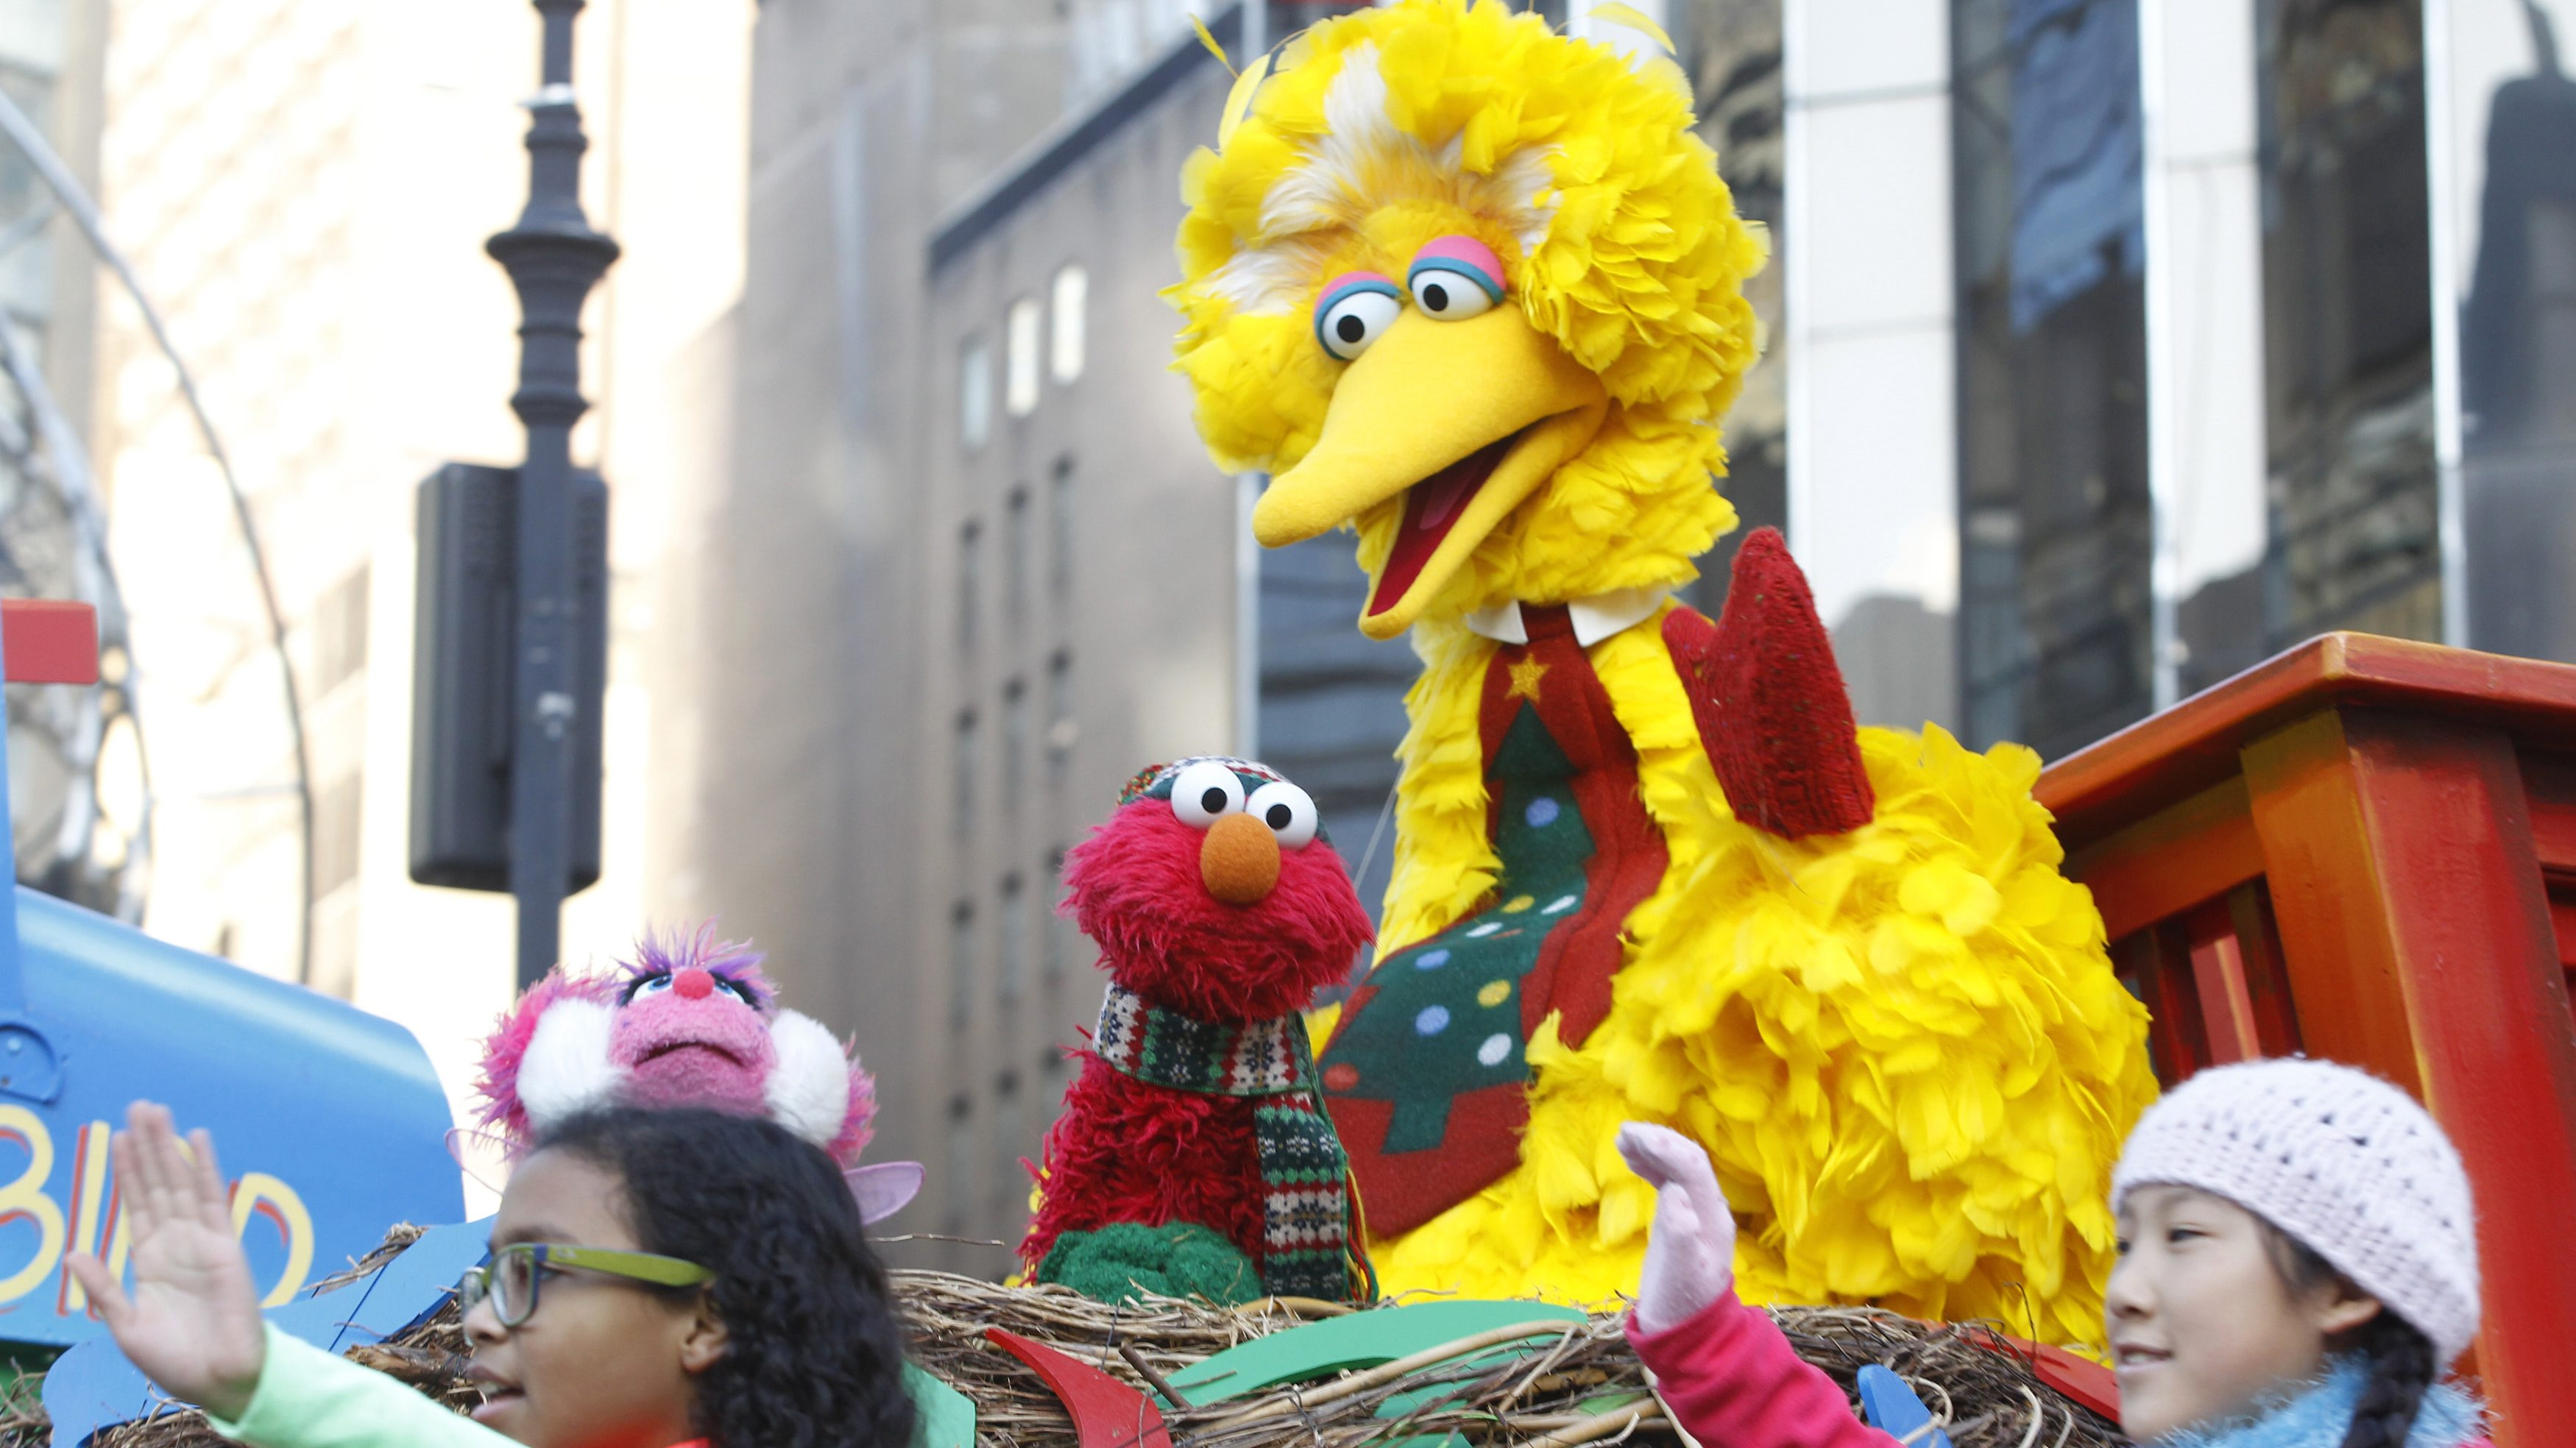 Elmo and Big Bird in the Macys parade